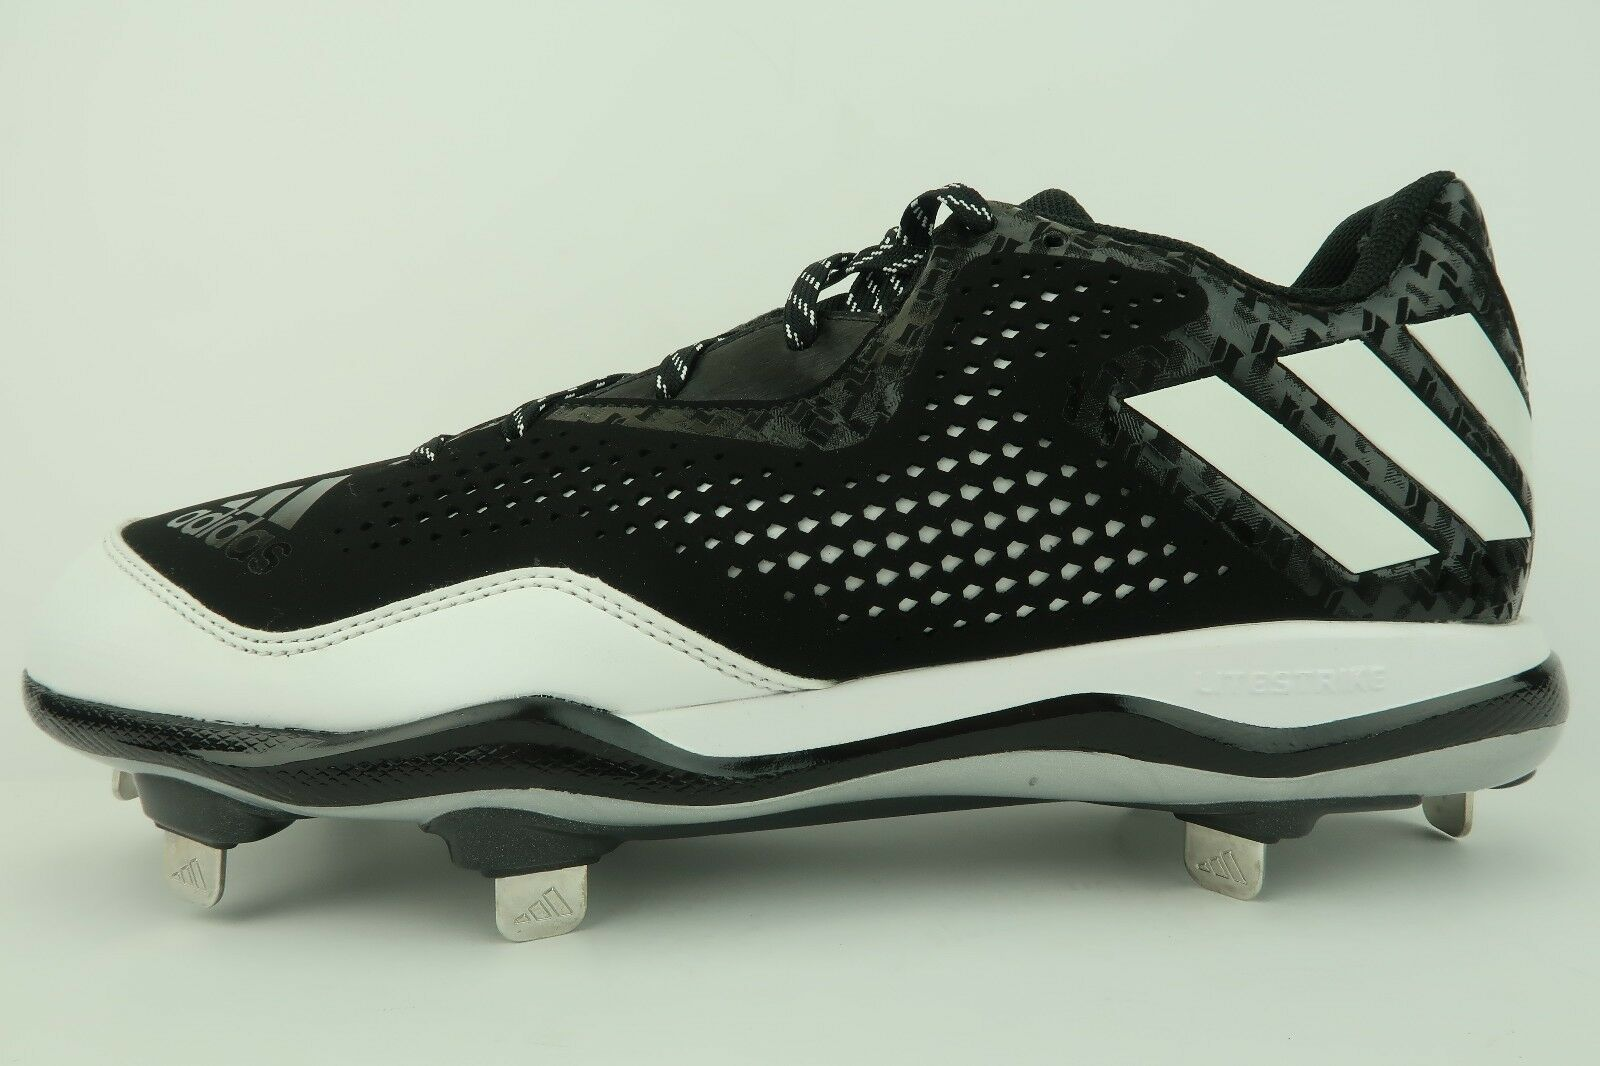 buy popular 6b1d1 3901f ... Mens Adidas PowerAlley 4 Black Black Black White Baseball Cleat Shoe  Q16481 Size 11 New a7b8f8 ...